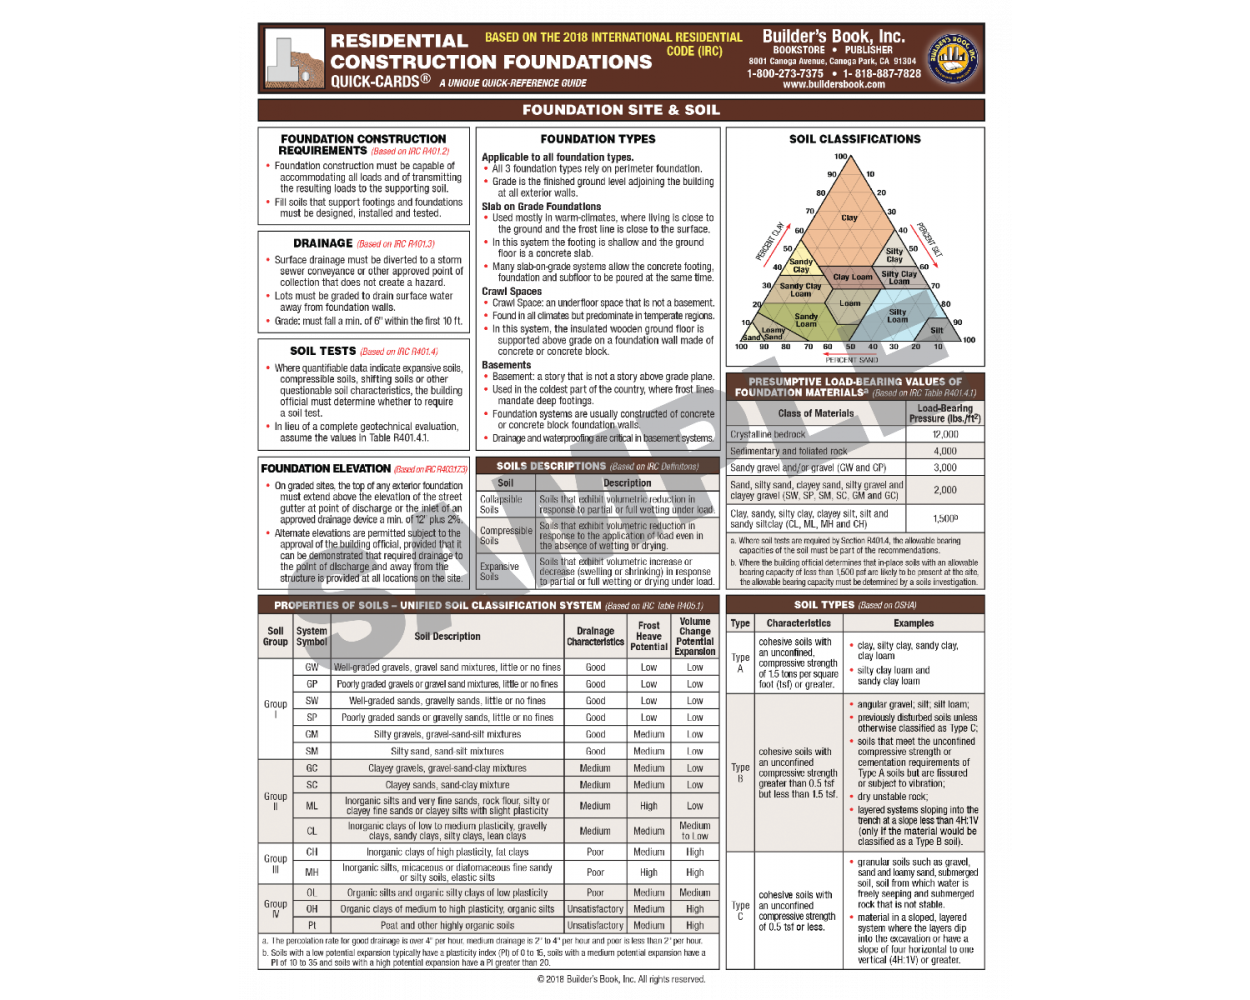 Residential Construction Foundation Quick-Card 2018 IRC